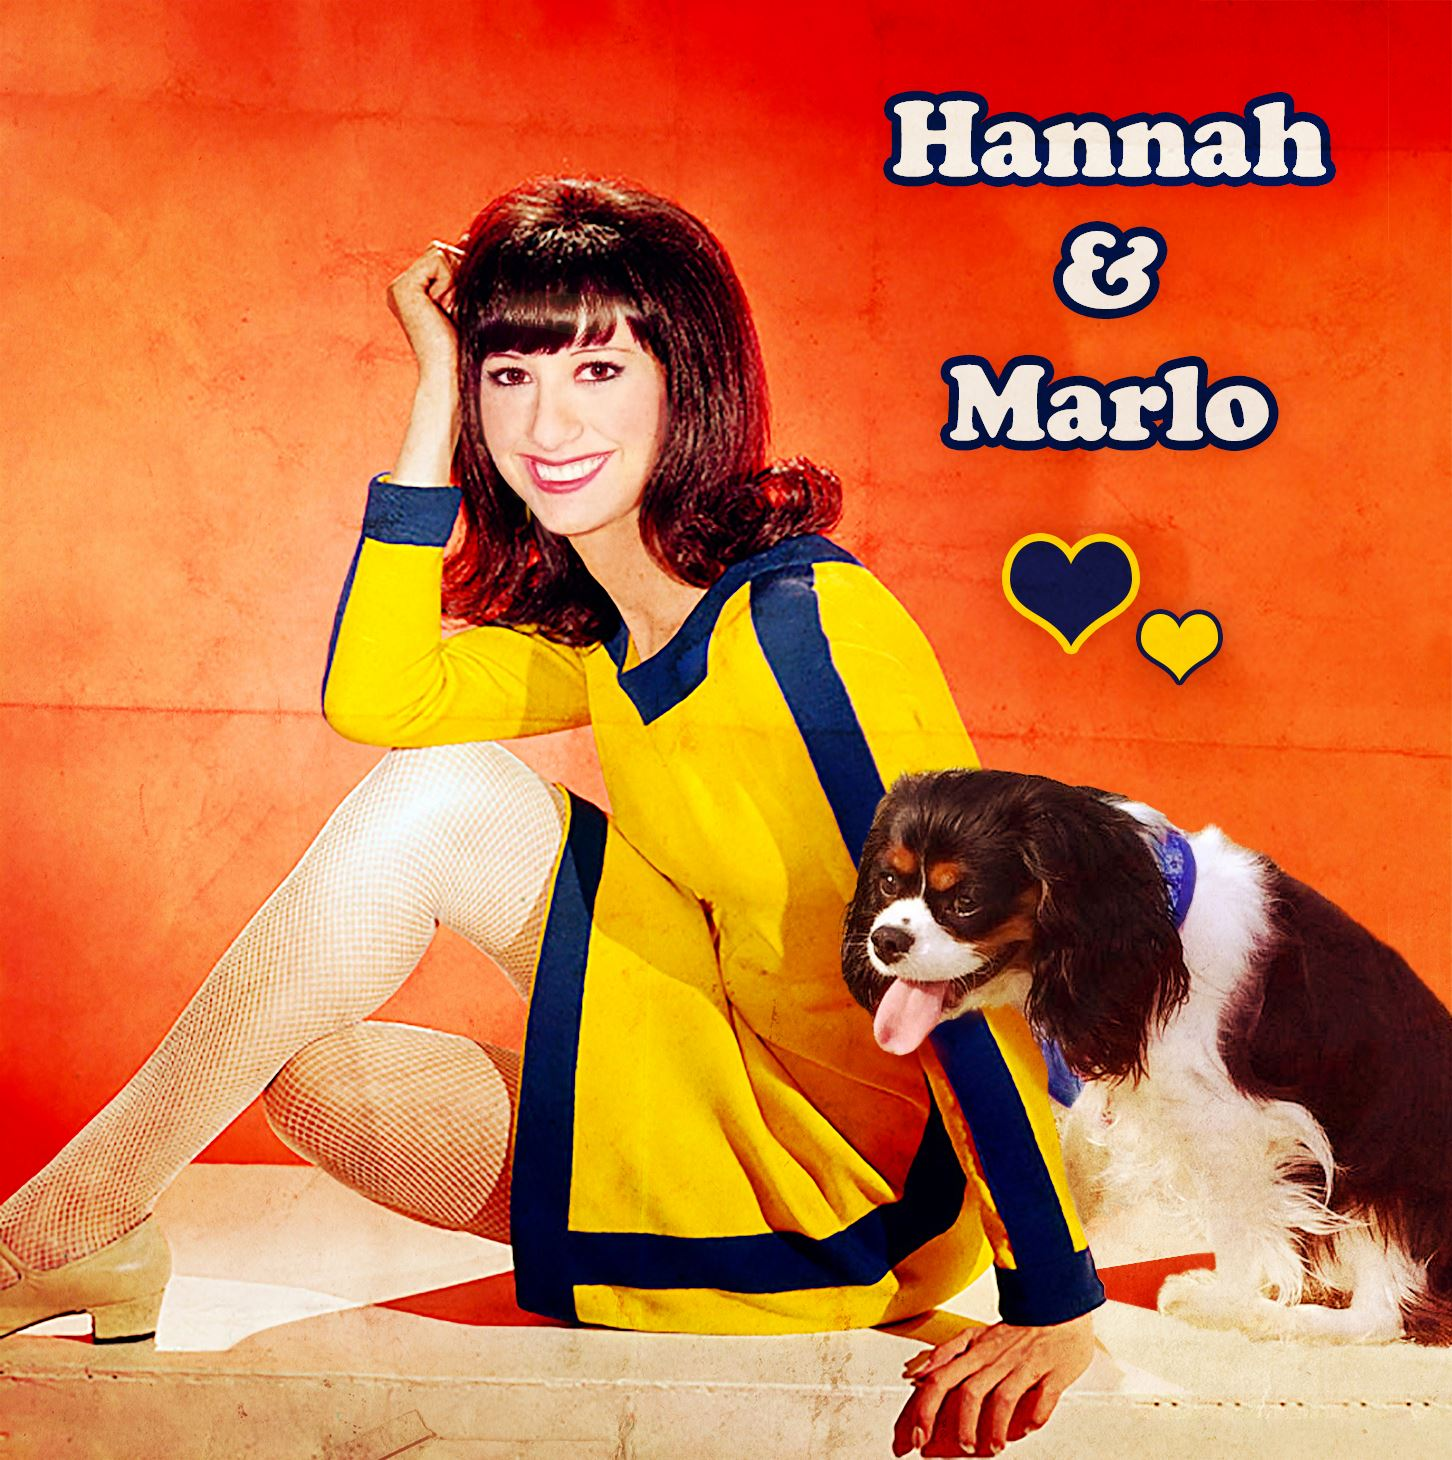 Photo Manipulation | Hannah & Marlo